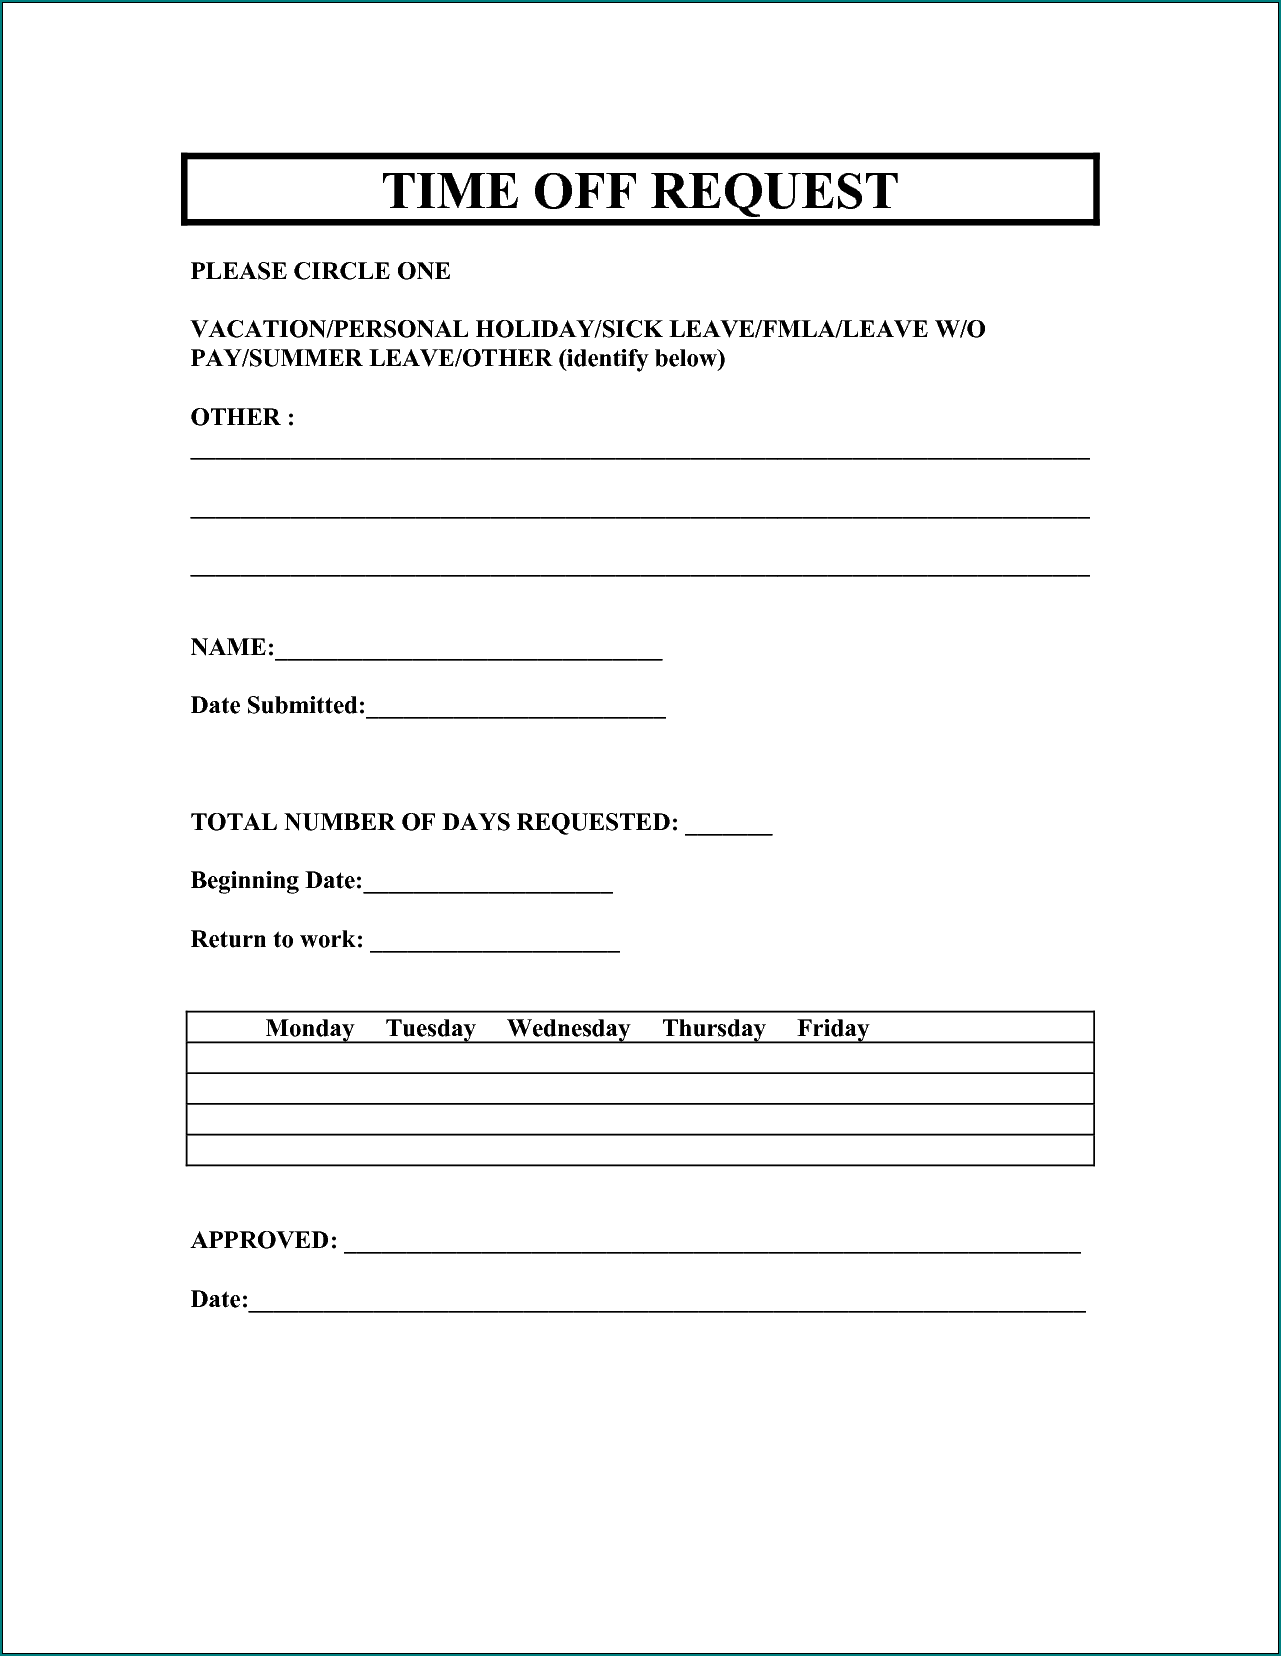 Sample of Request For Time Off Form